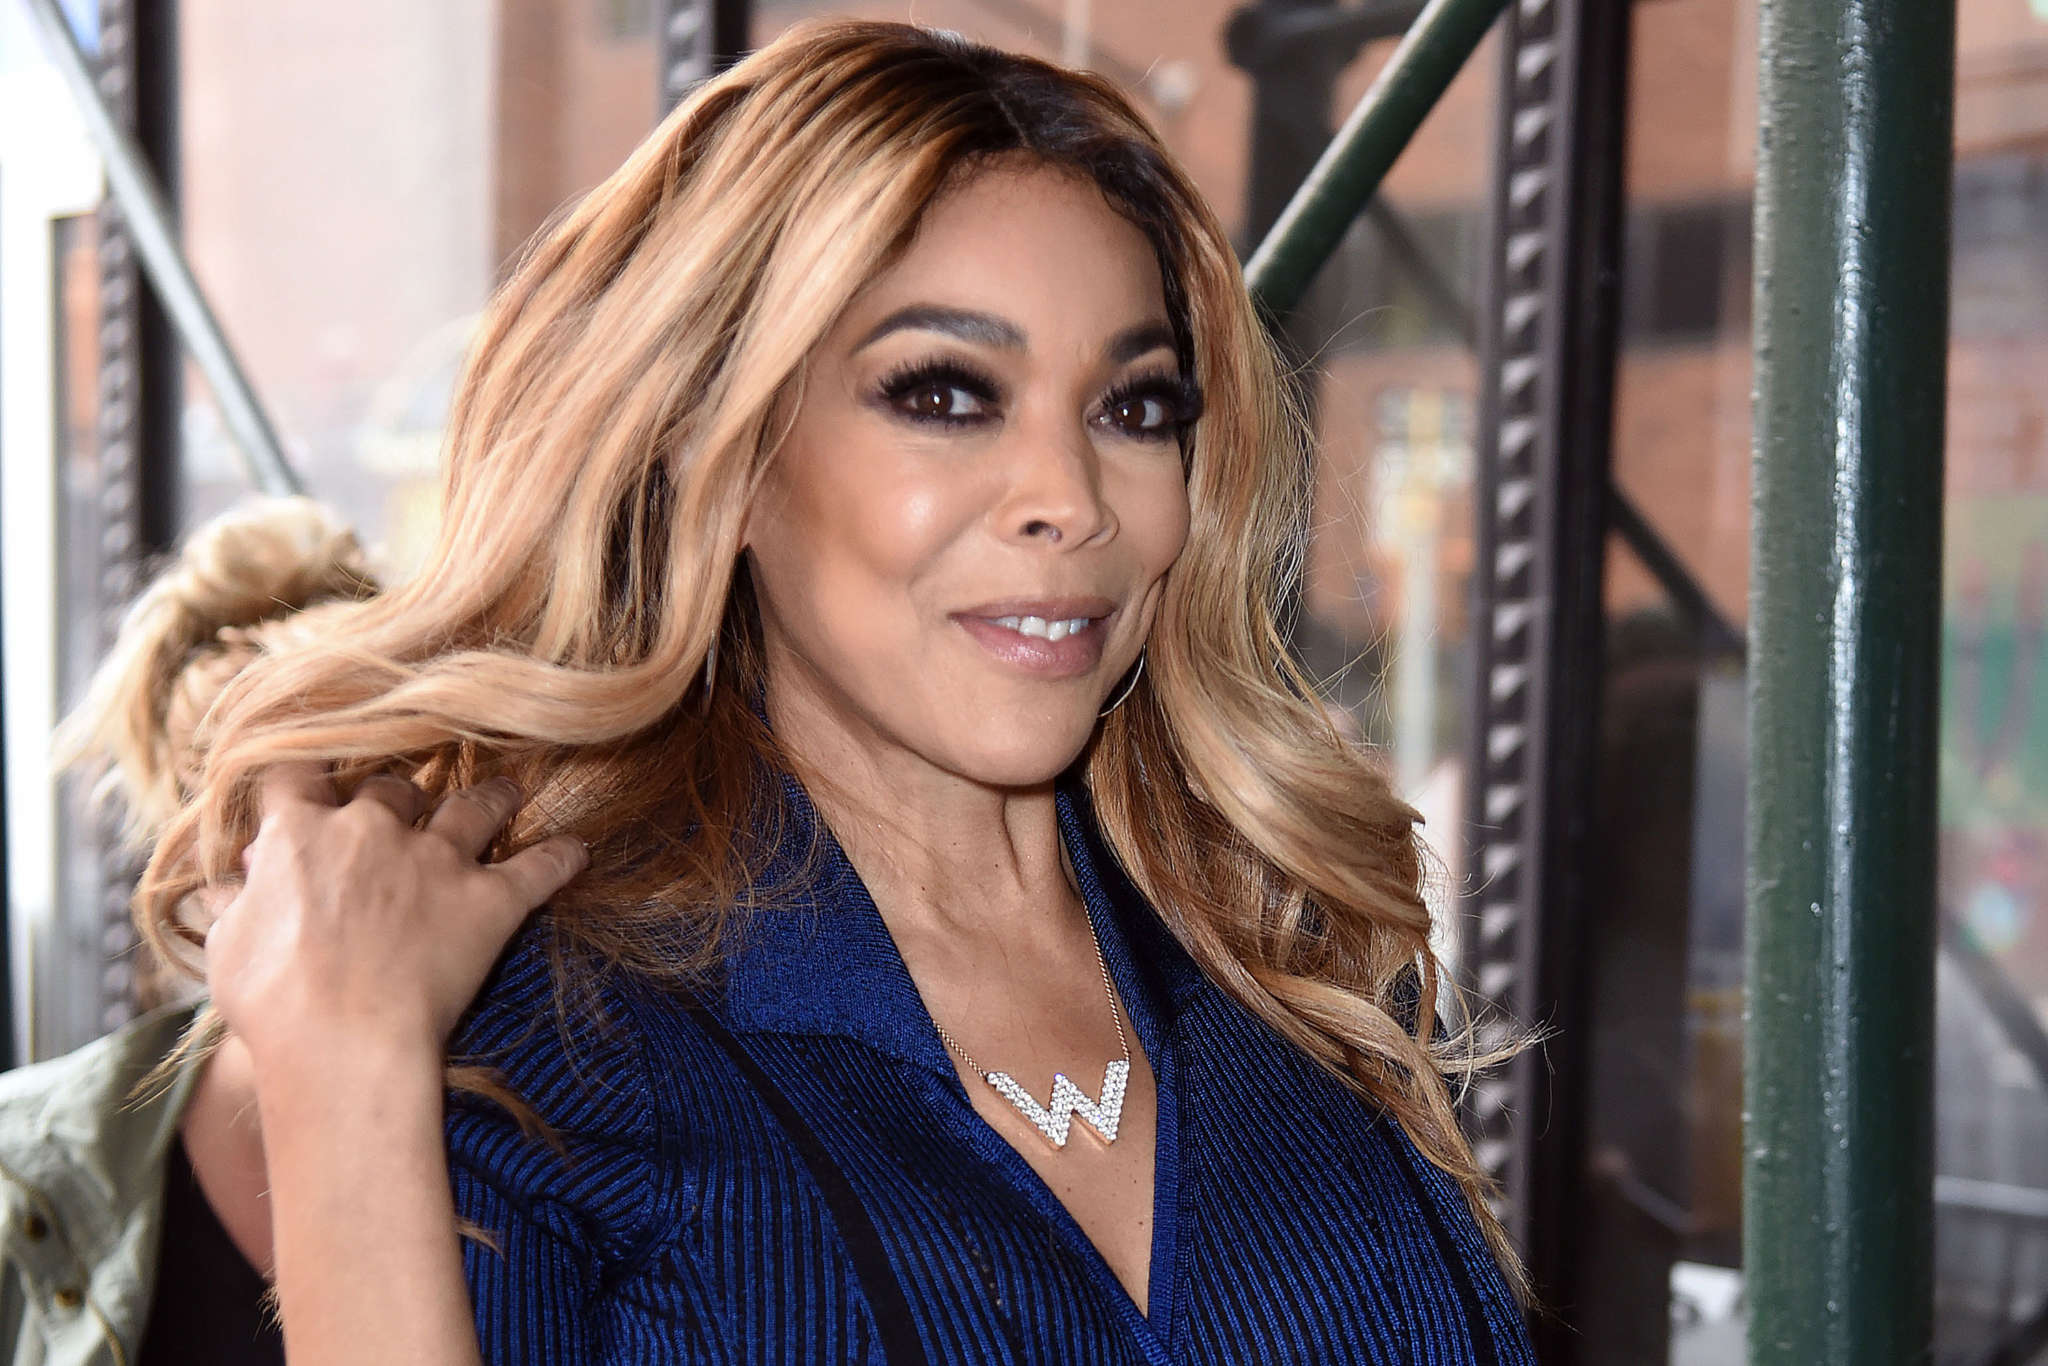 wendy-williams-teases-fans-with-a-comment-following-her-recent-date